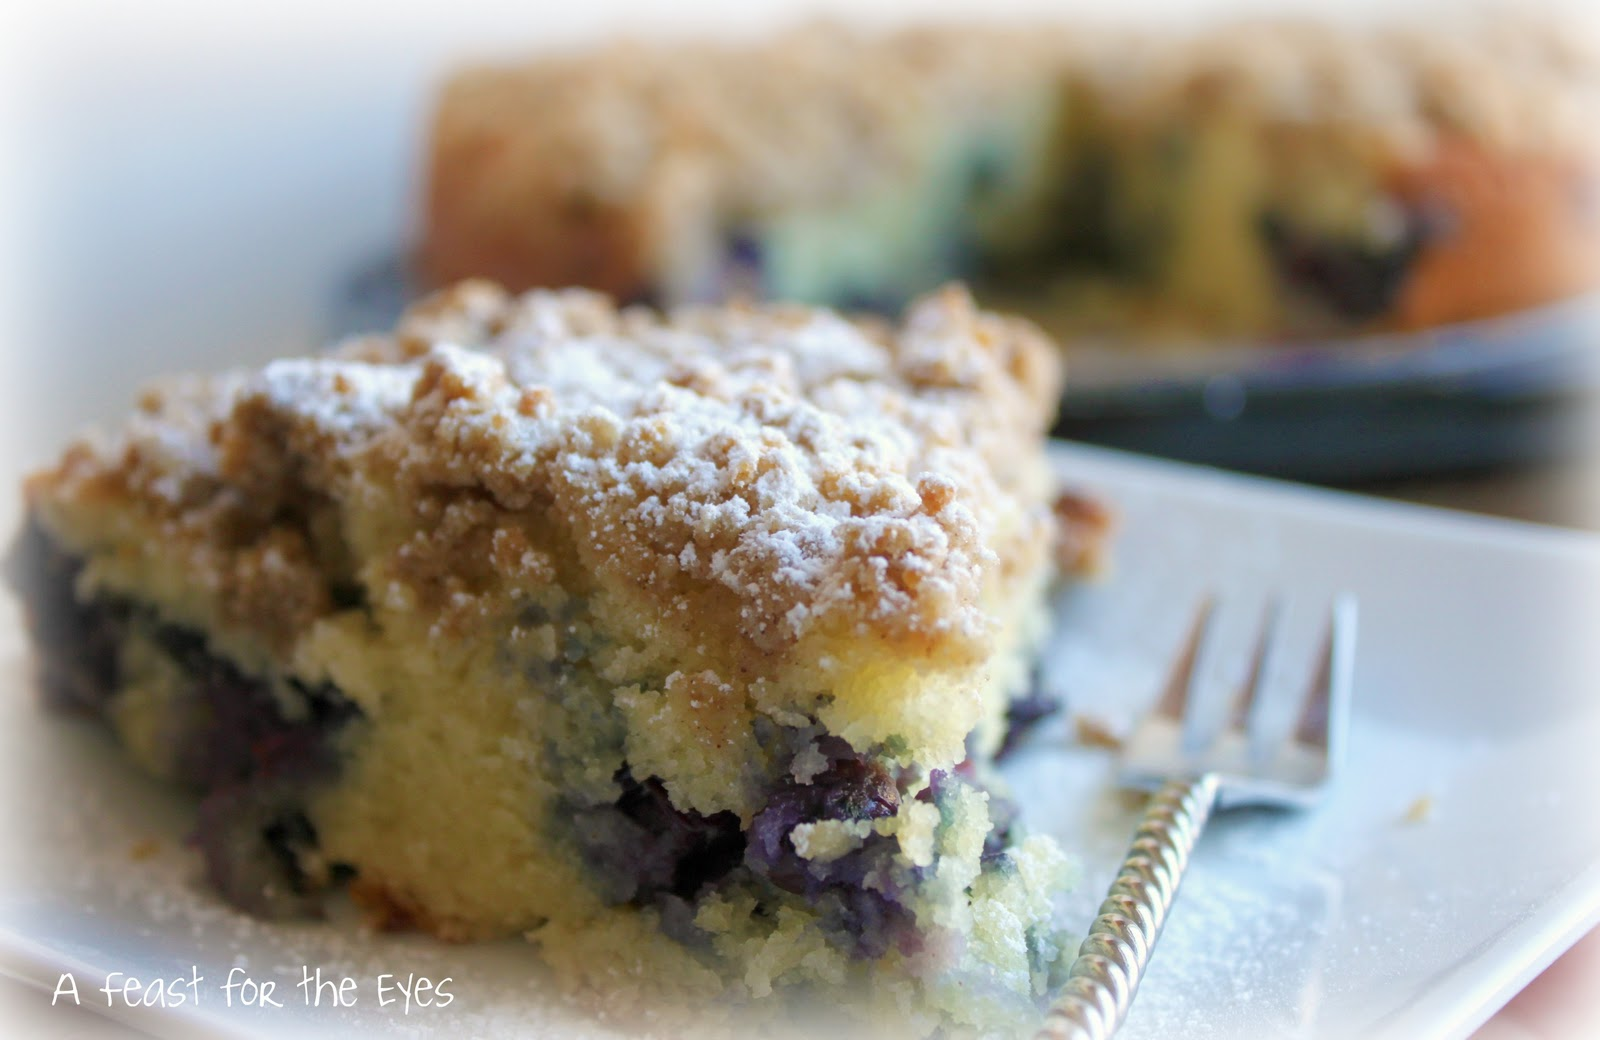 Feast for the Eyes: Blueberry Crumb Cake